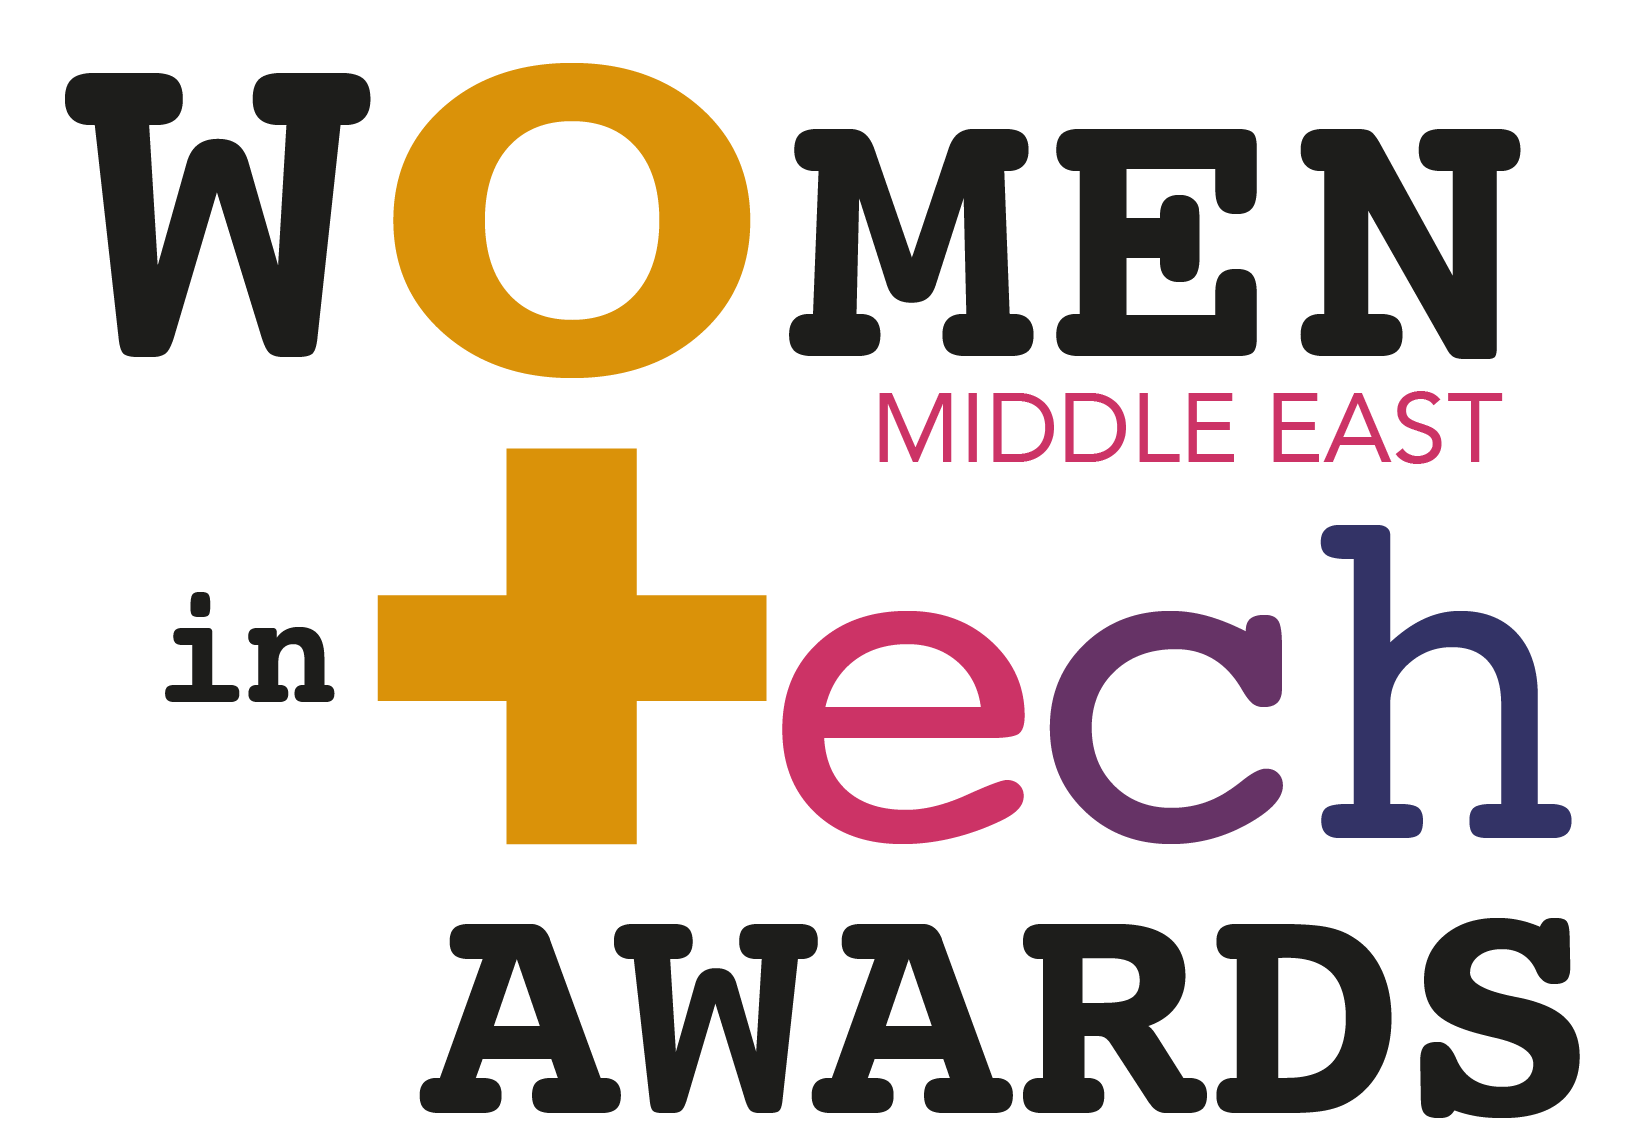 Women in Tech Awards Middle East